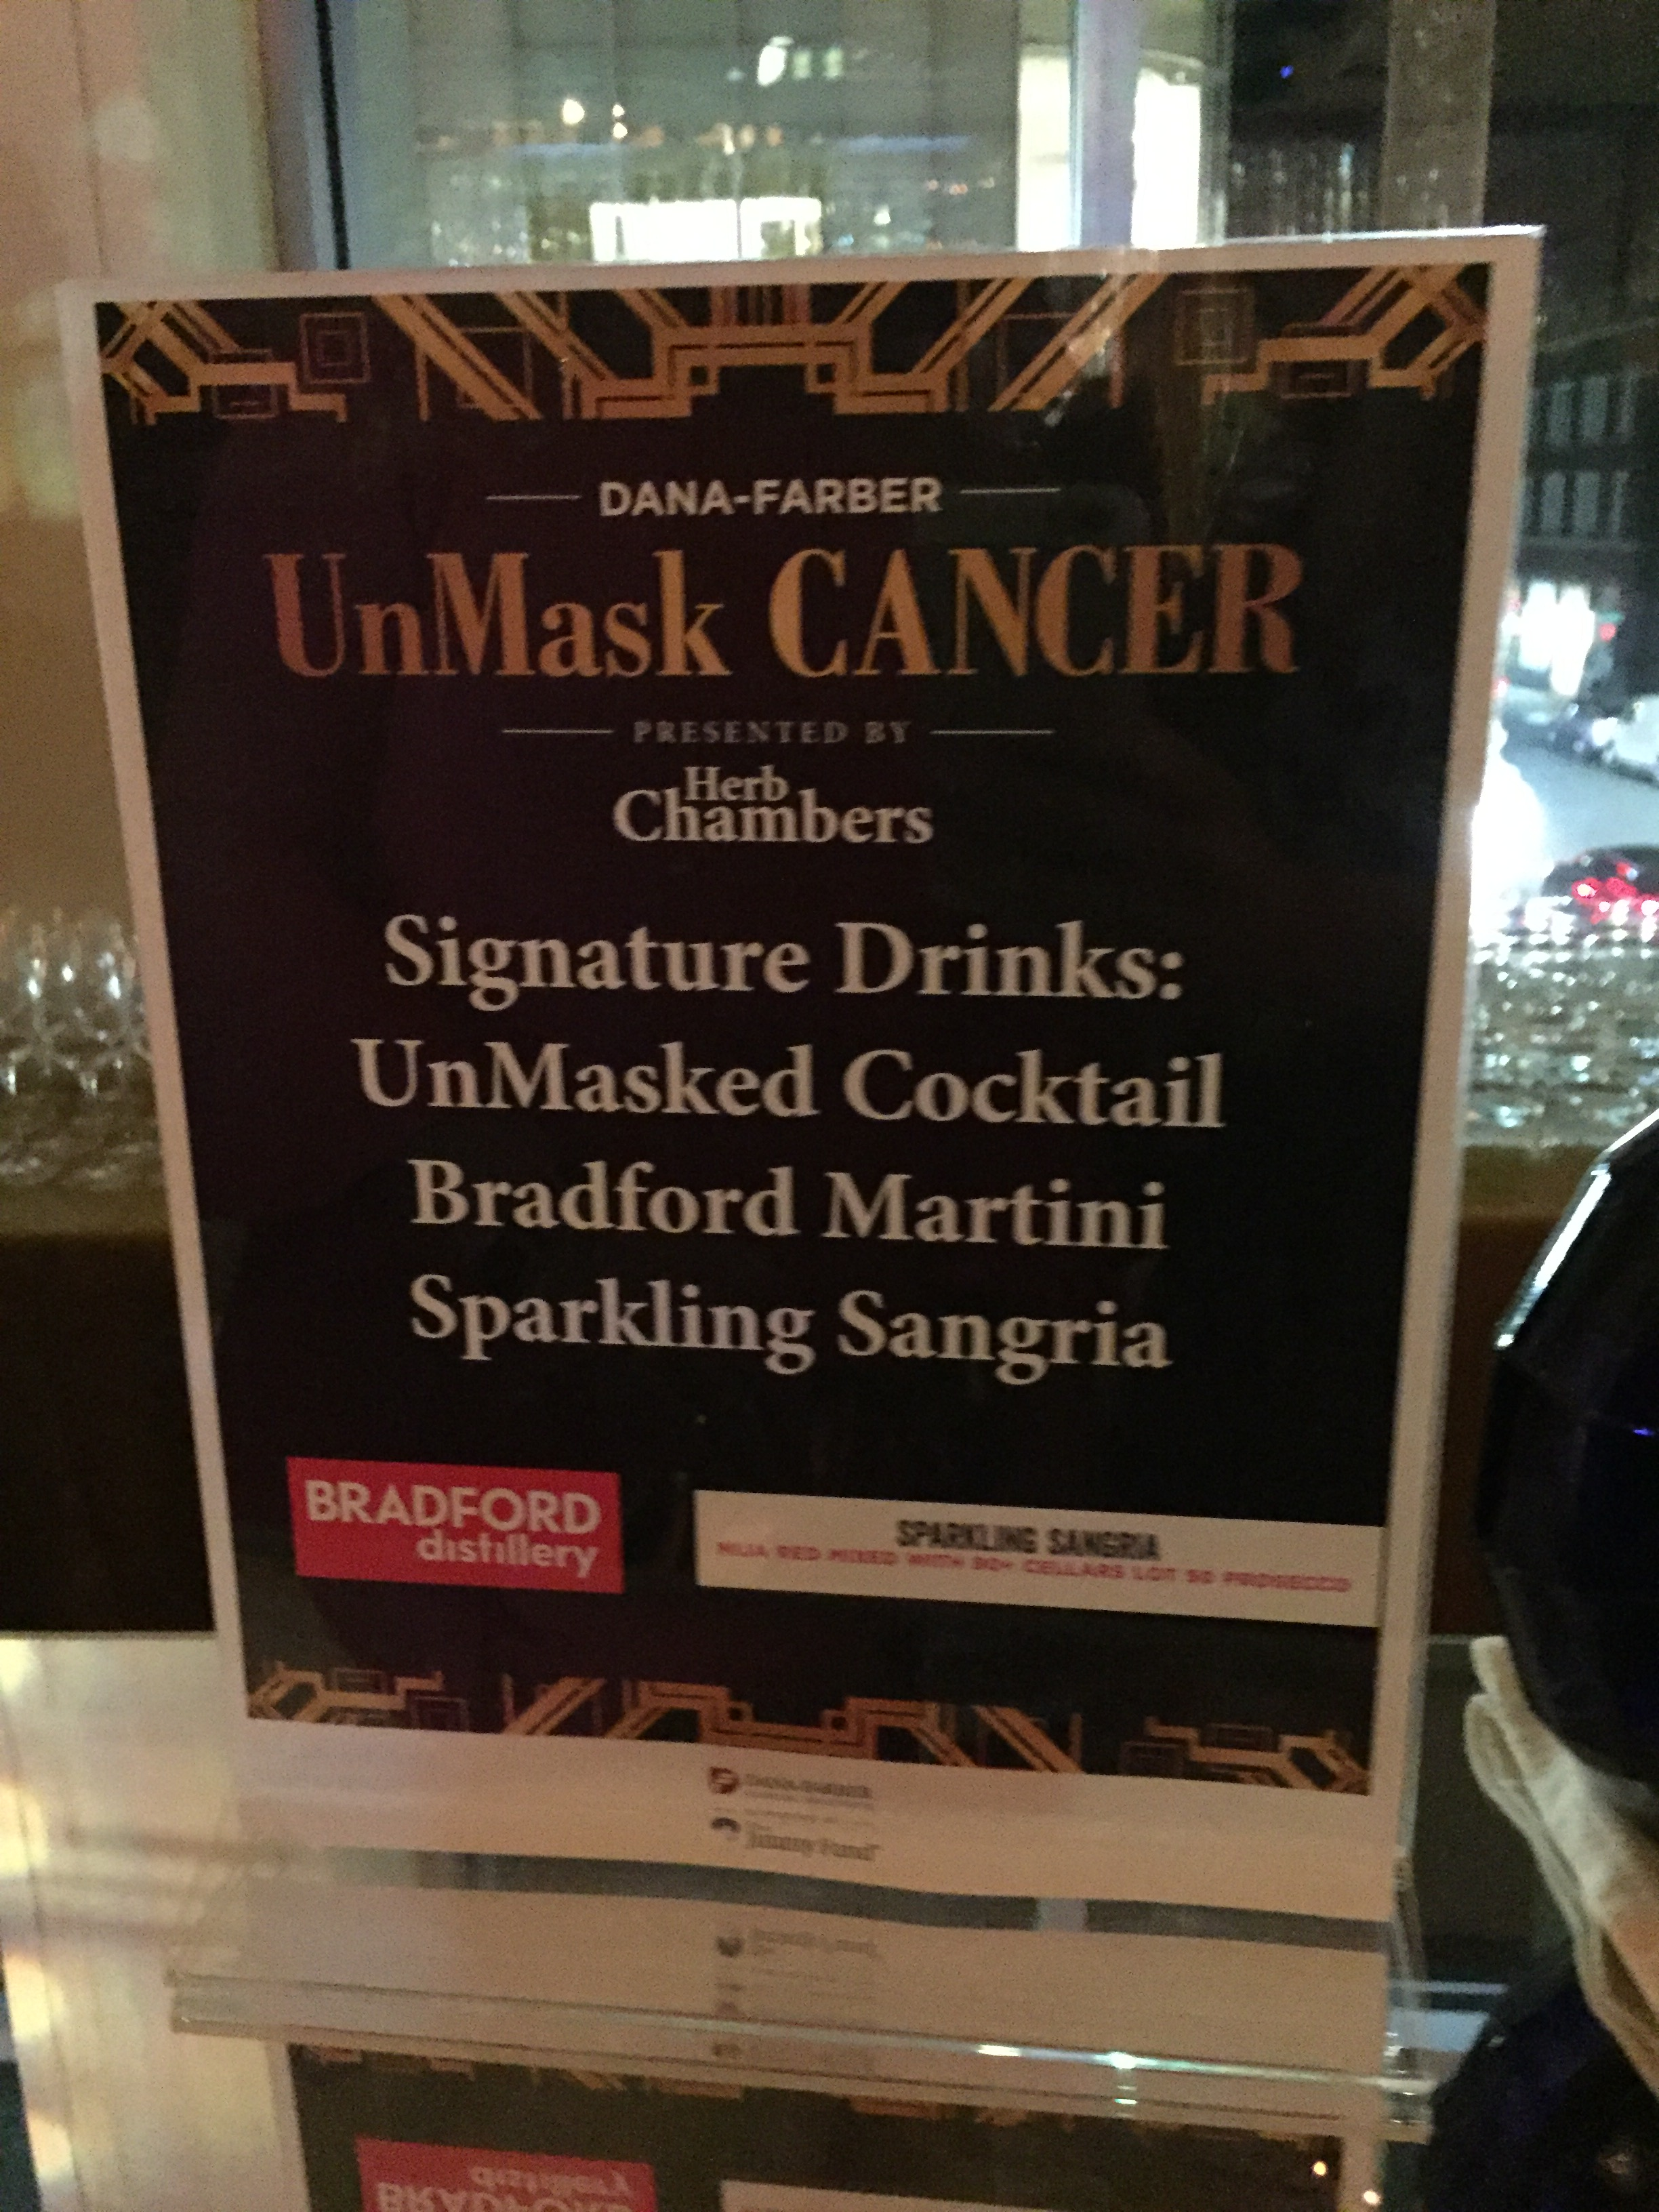 UnMask Cancer Gala photos by Socially Superlative (6)